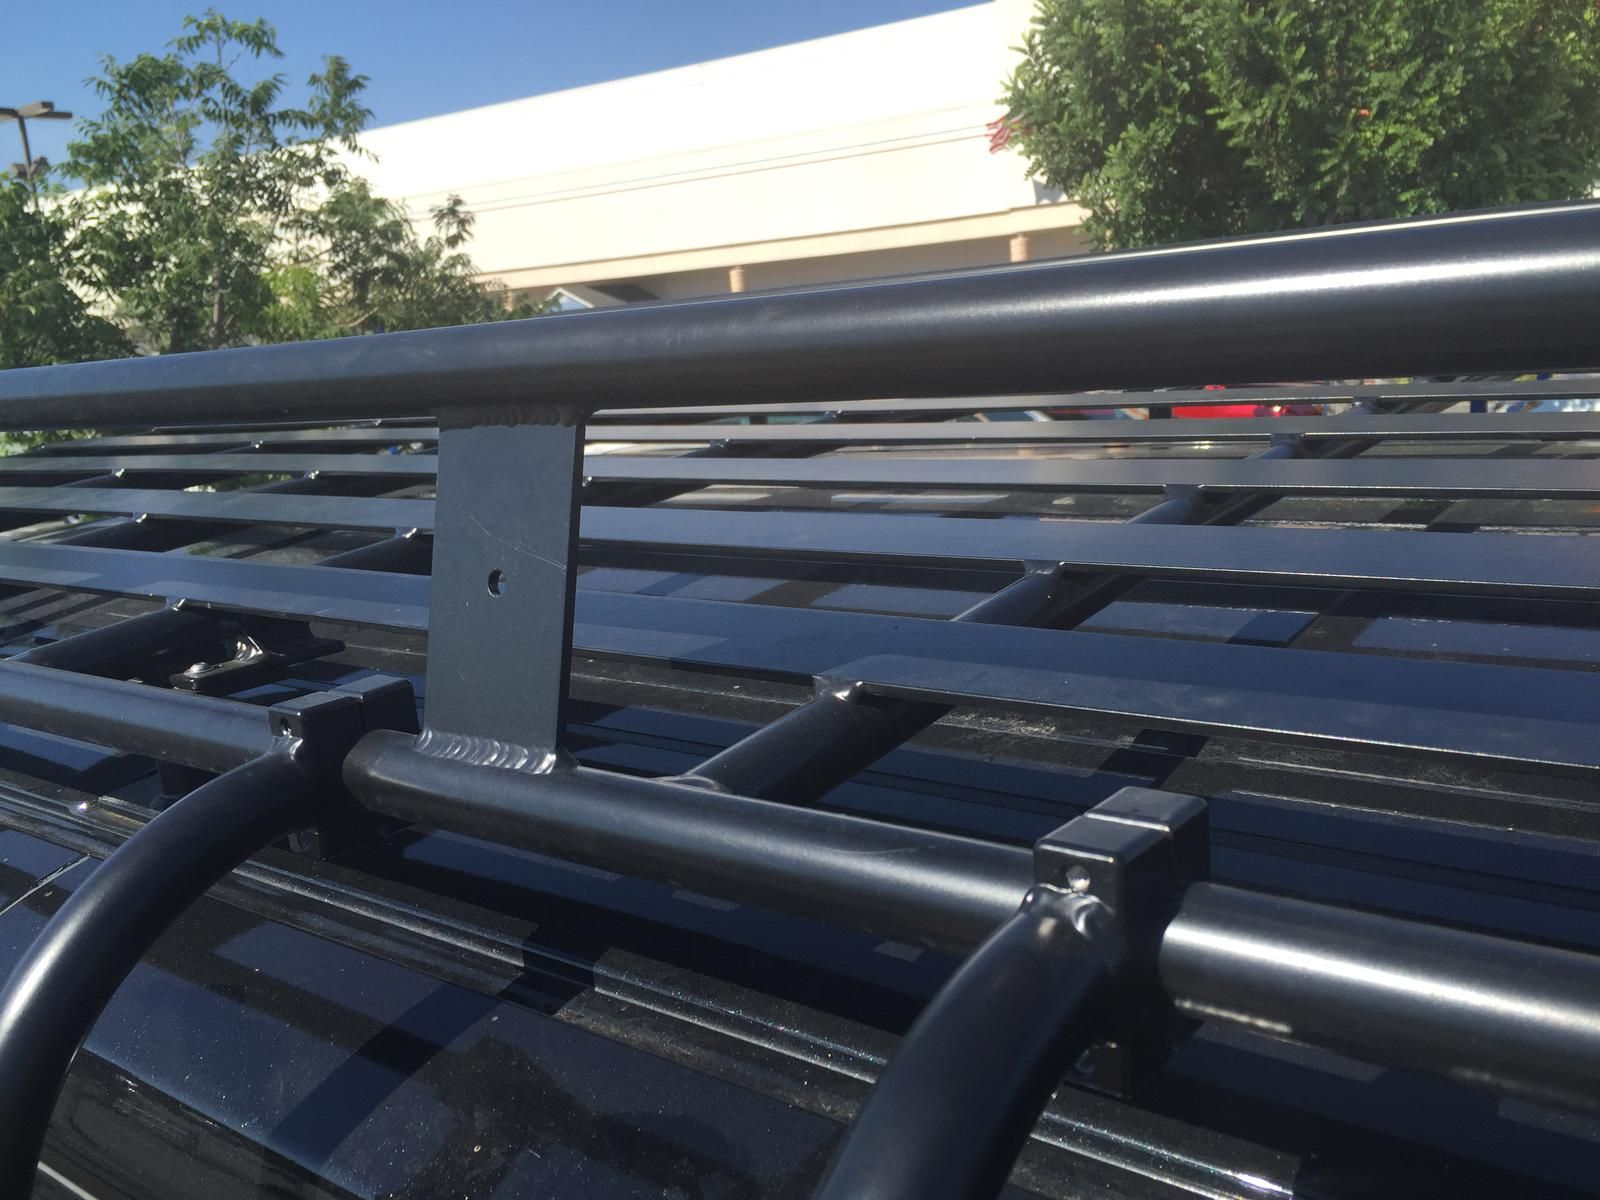 Close Up Of Aluminess Roof Rack On Ford Transit Photo Cred